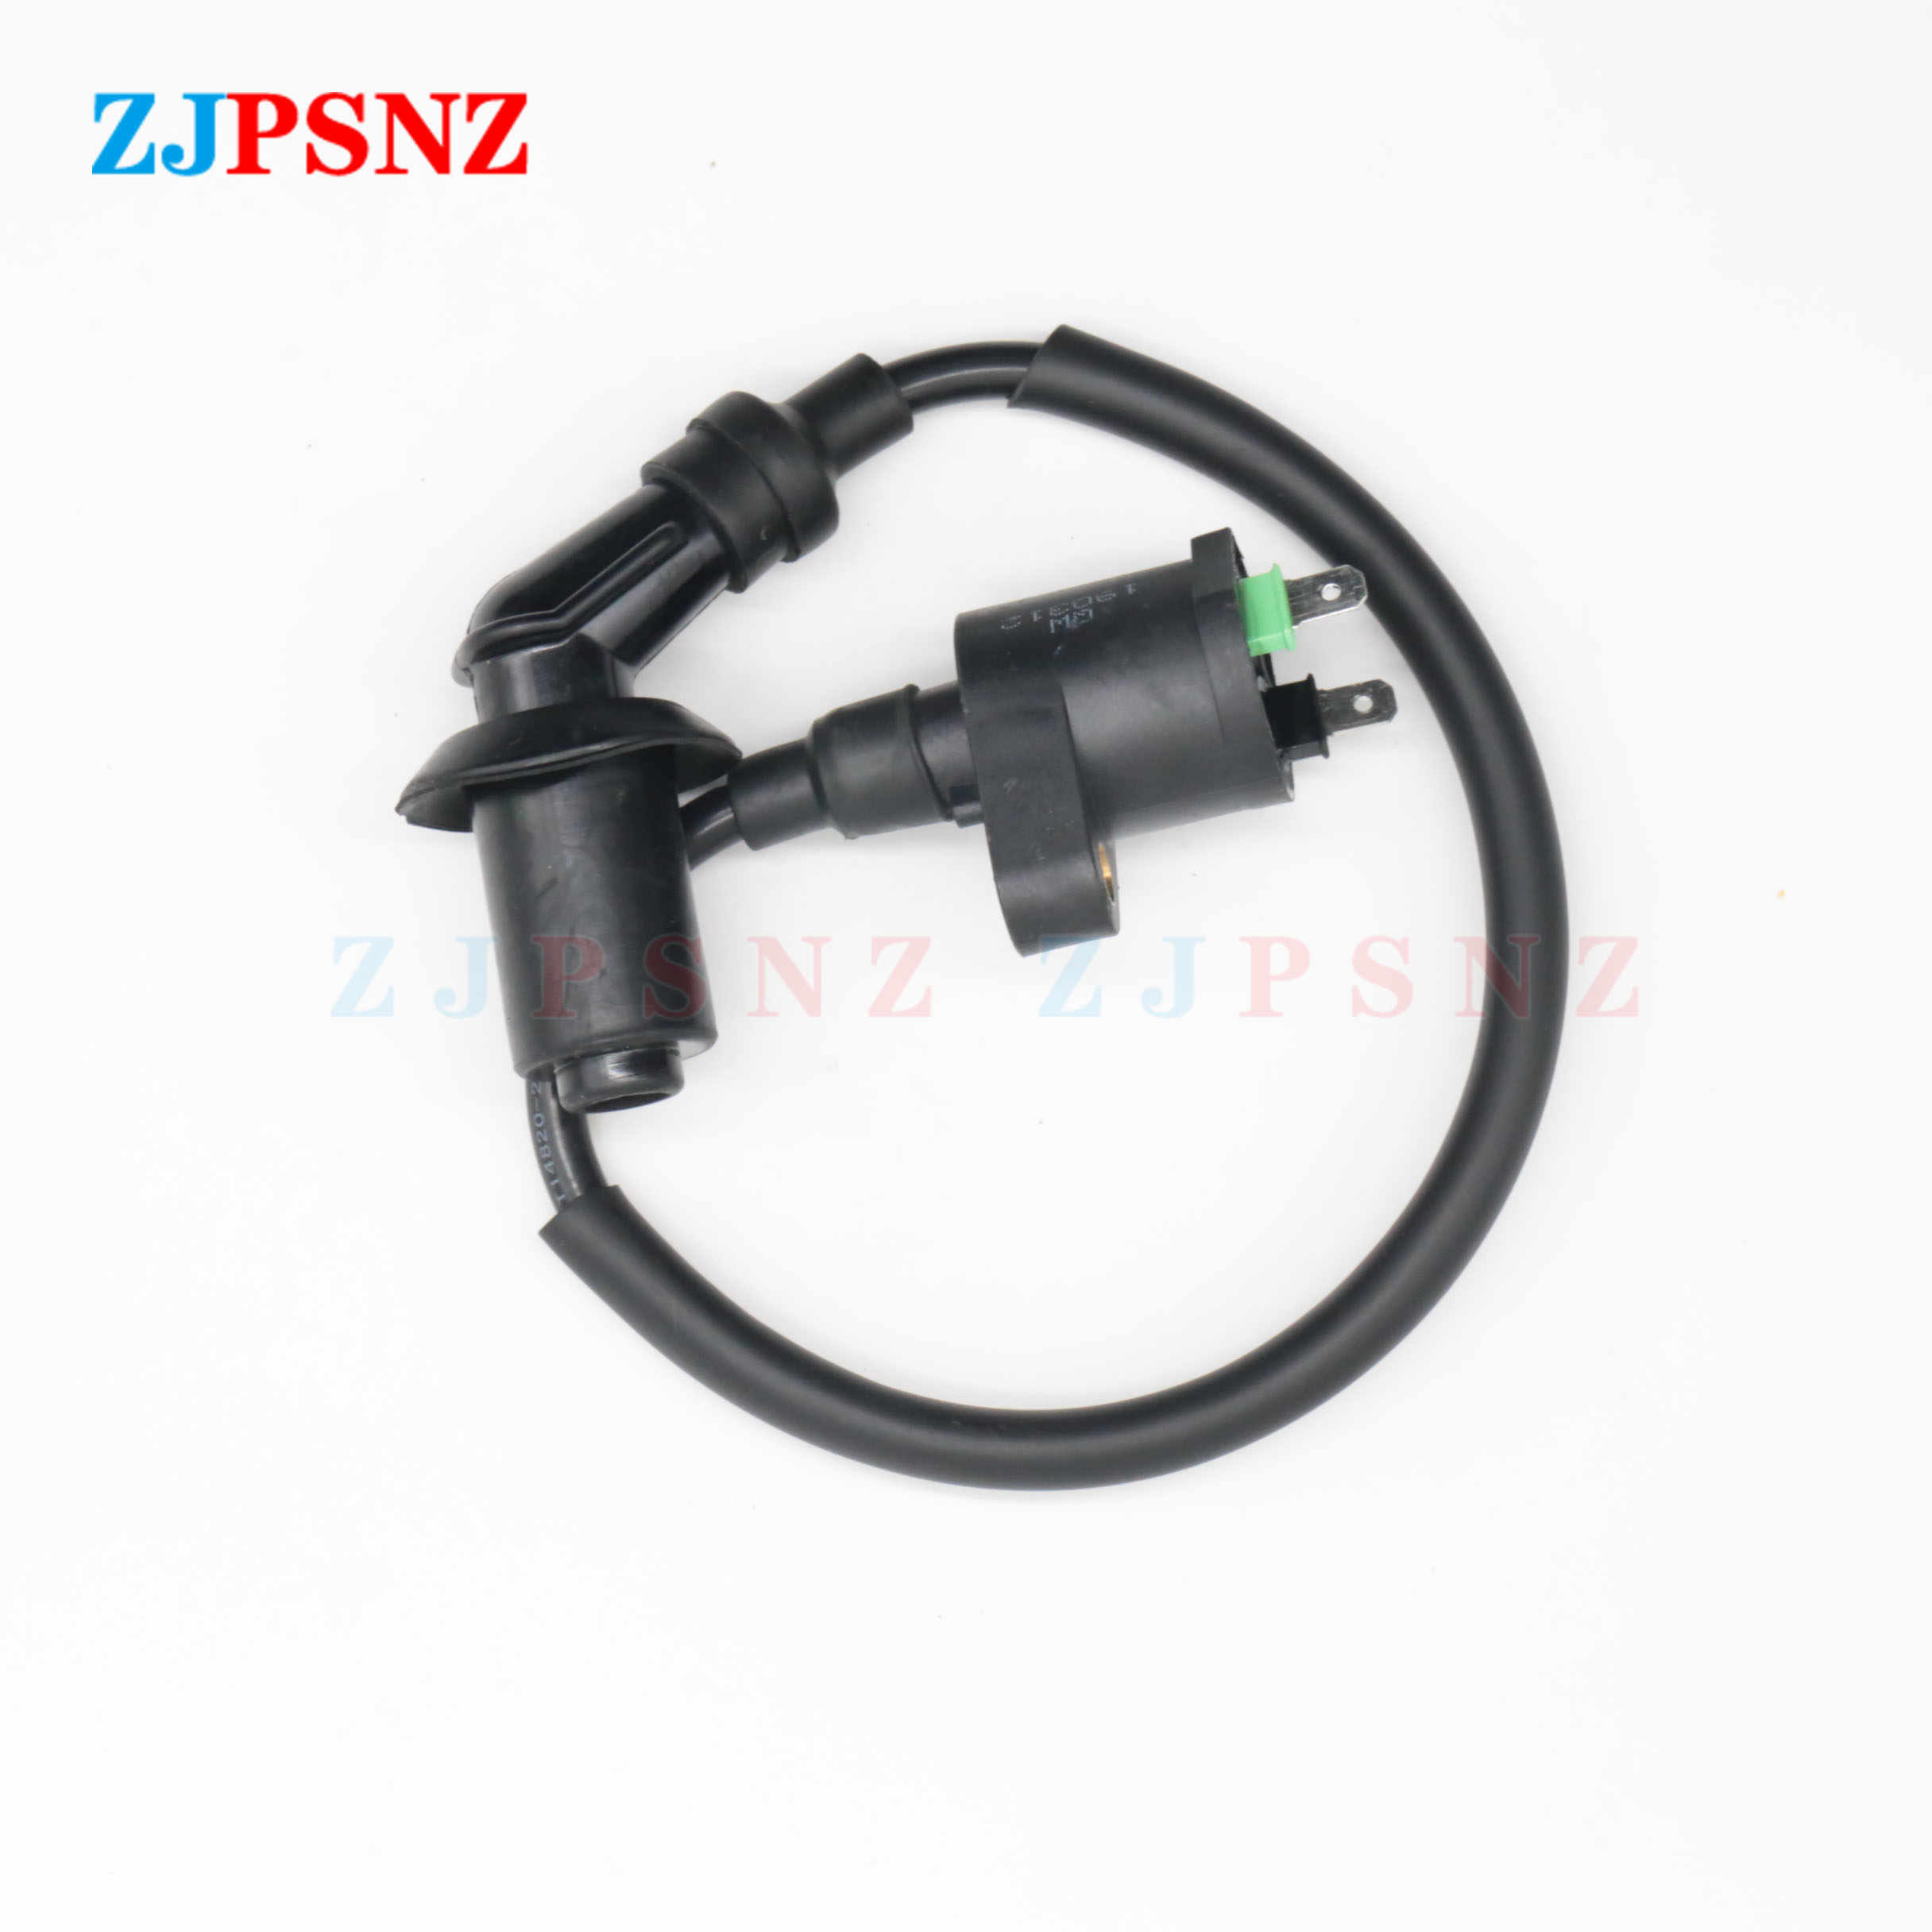 Ignition Coil Motorcycle high voltage package ignition coils Plastic Metal For GY6 50CC 125CC 150CC Engines Scooter Moped ATV